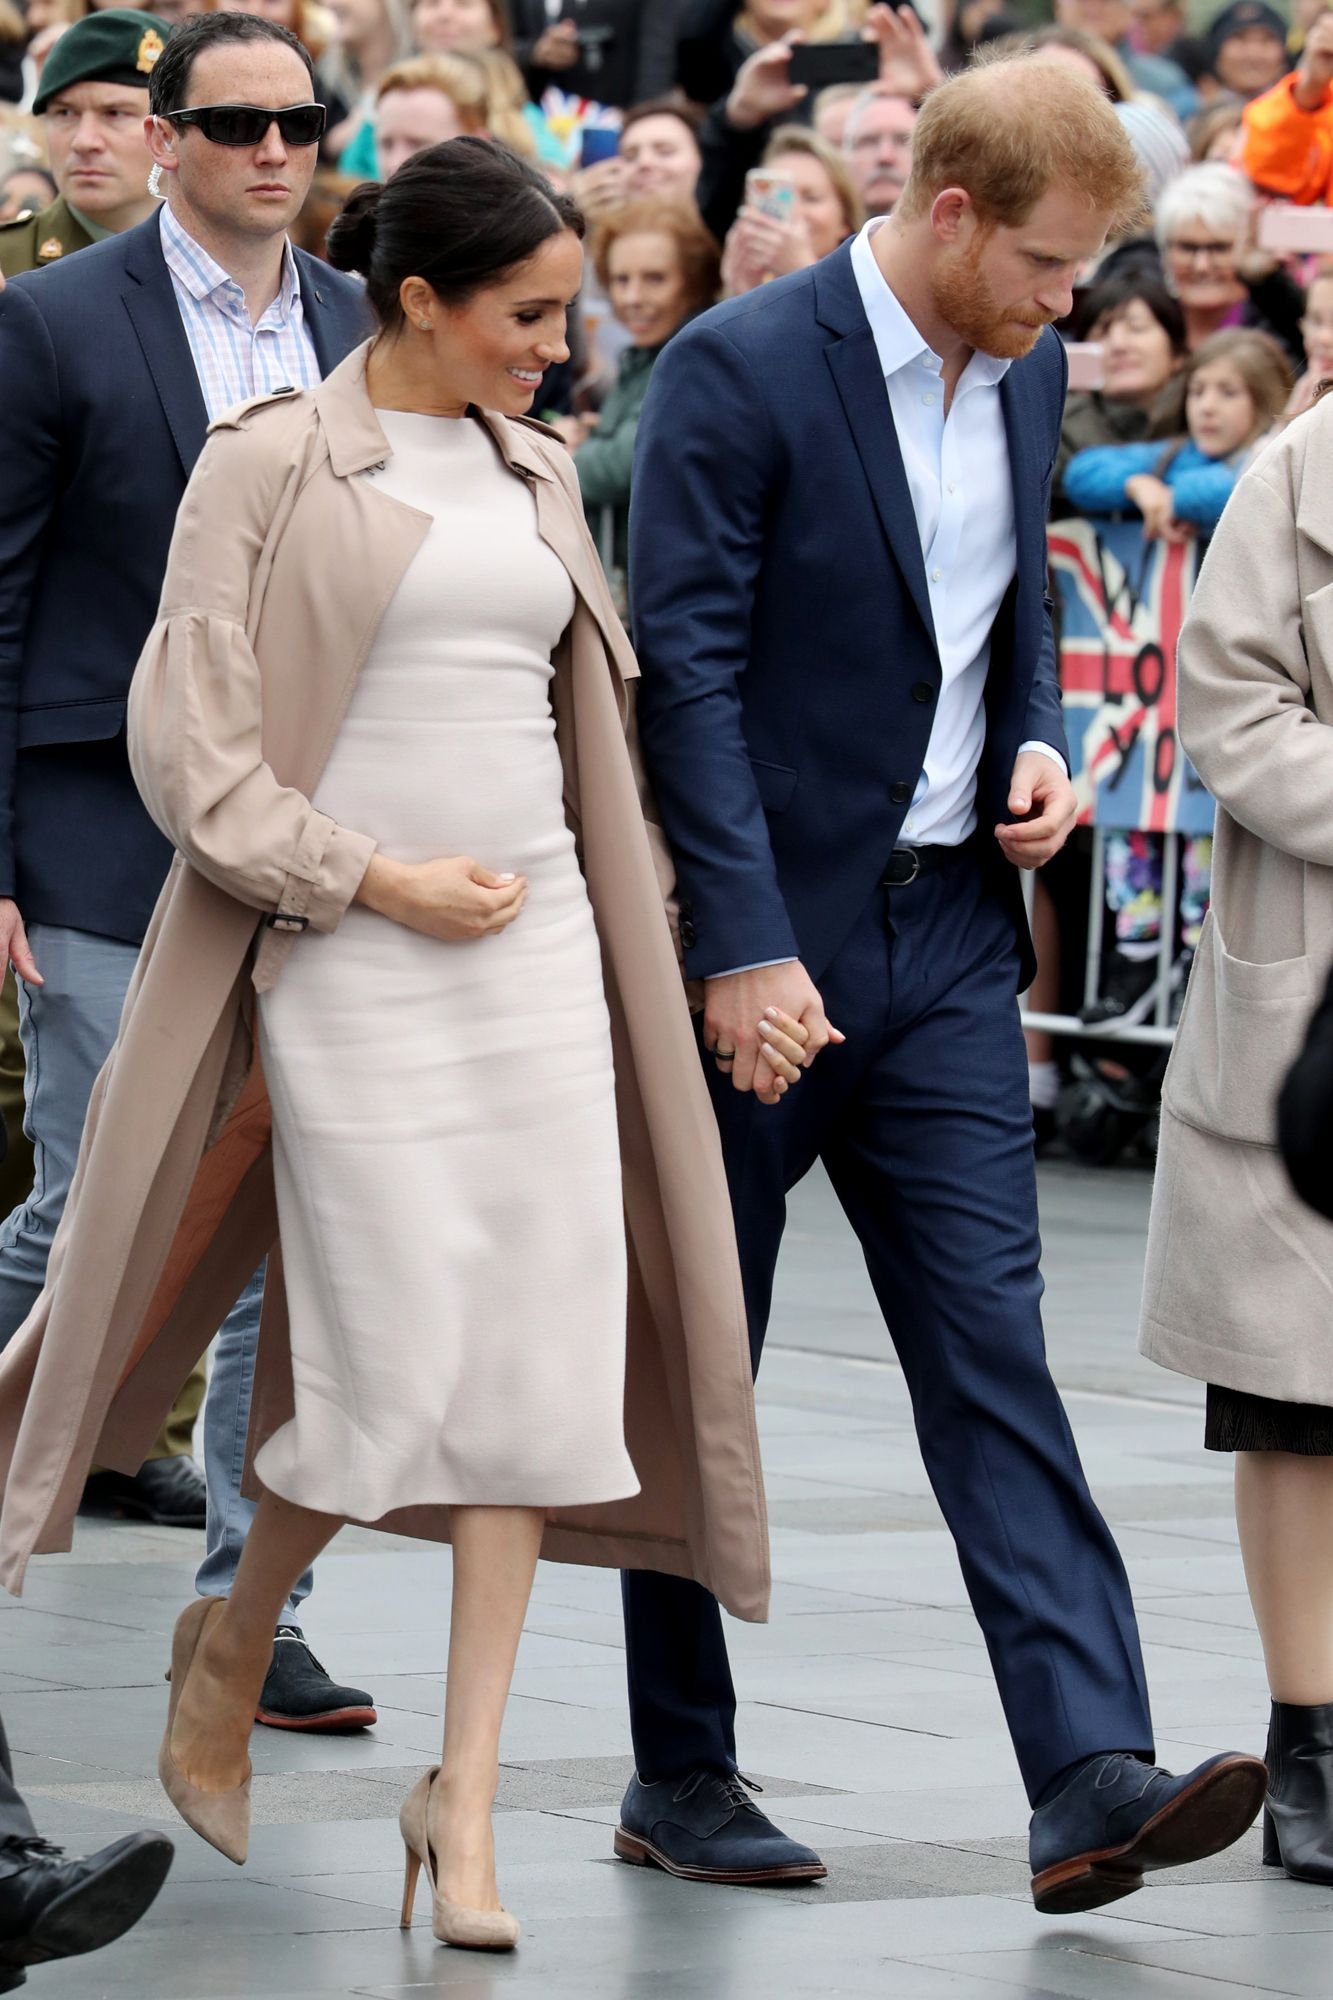 f3c8ee957f671 Meghan Markle Cradles Baby Bump as She Meets Members of the Public with  Prince Harry in Auckland